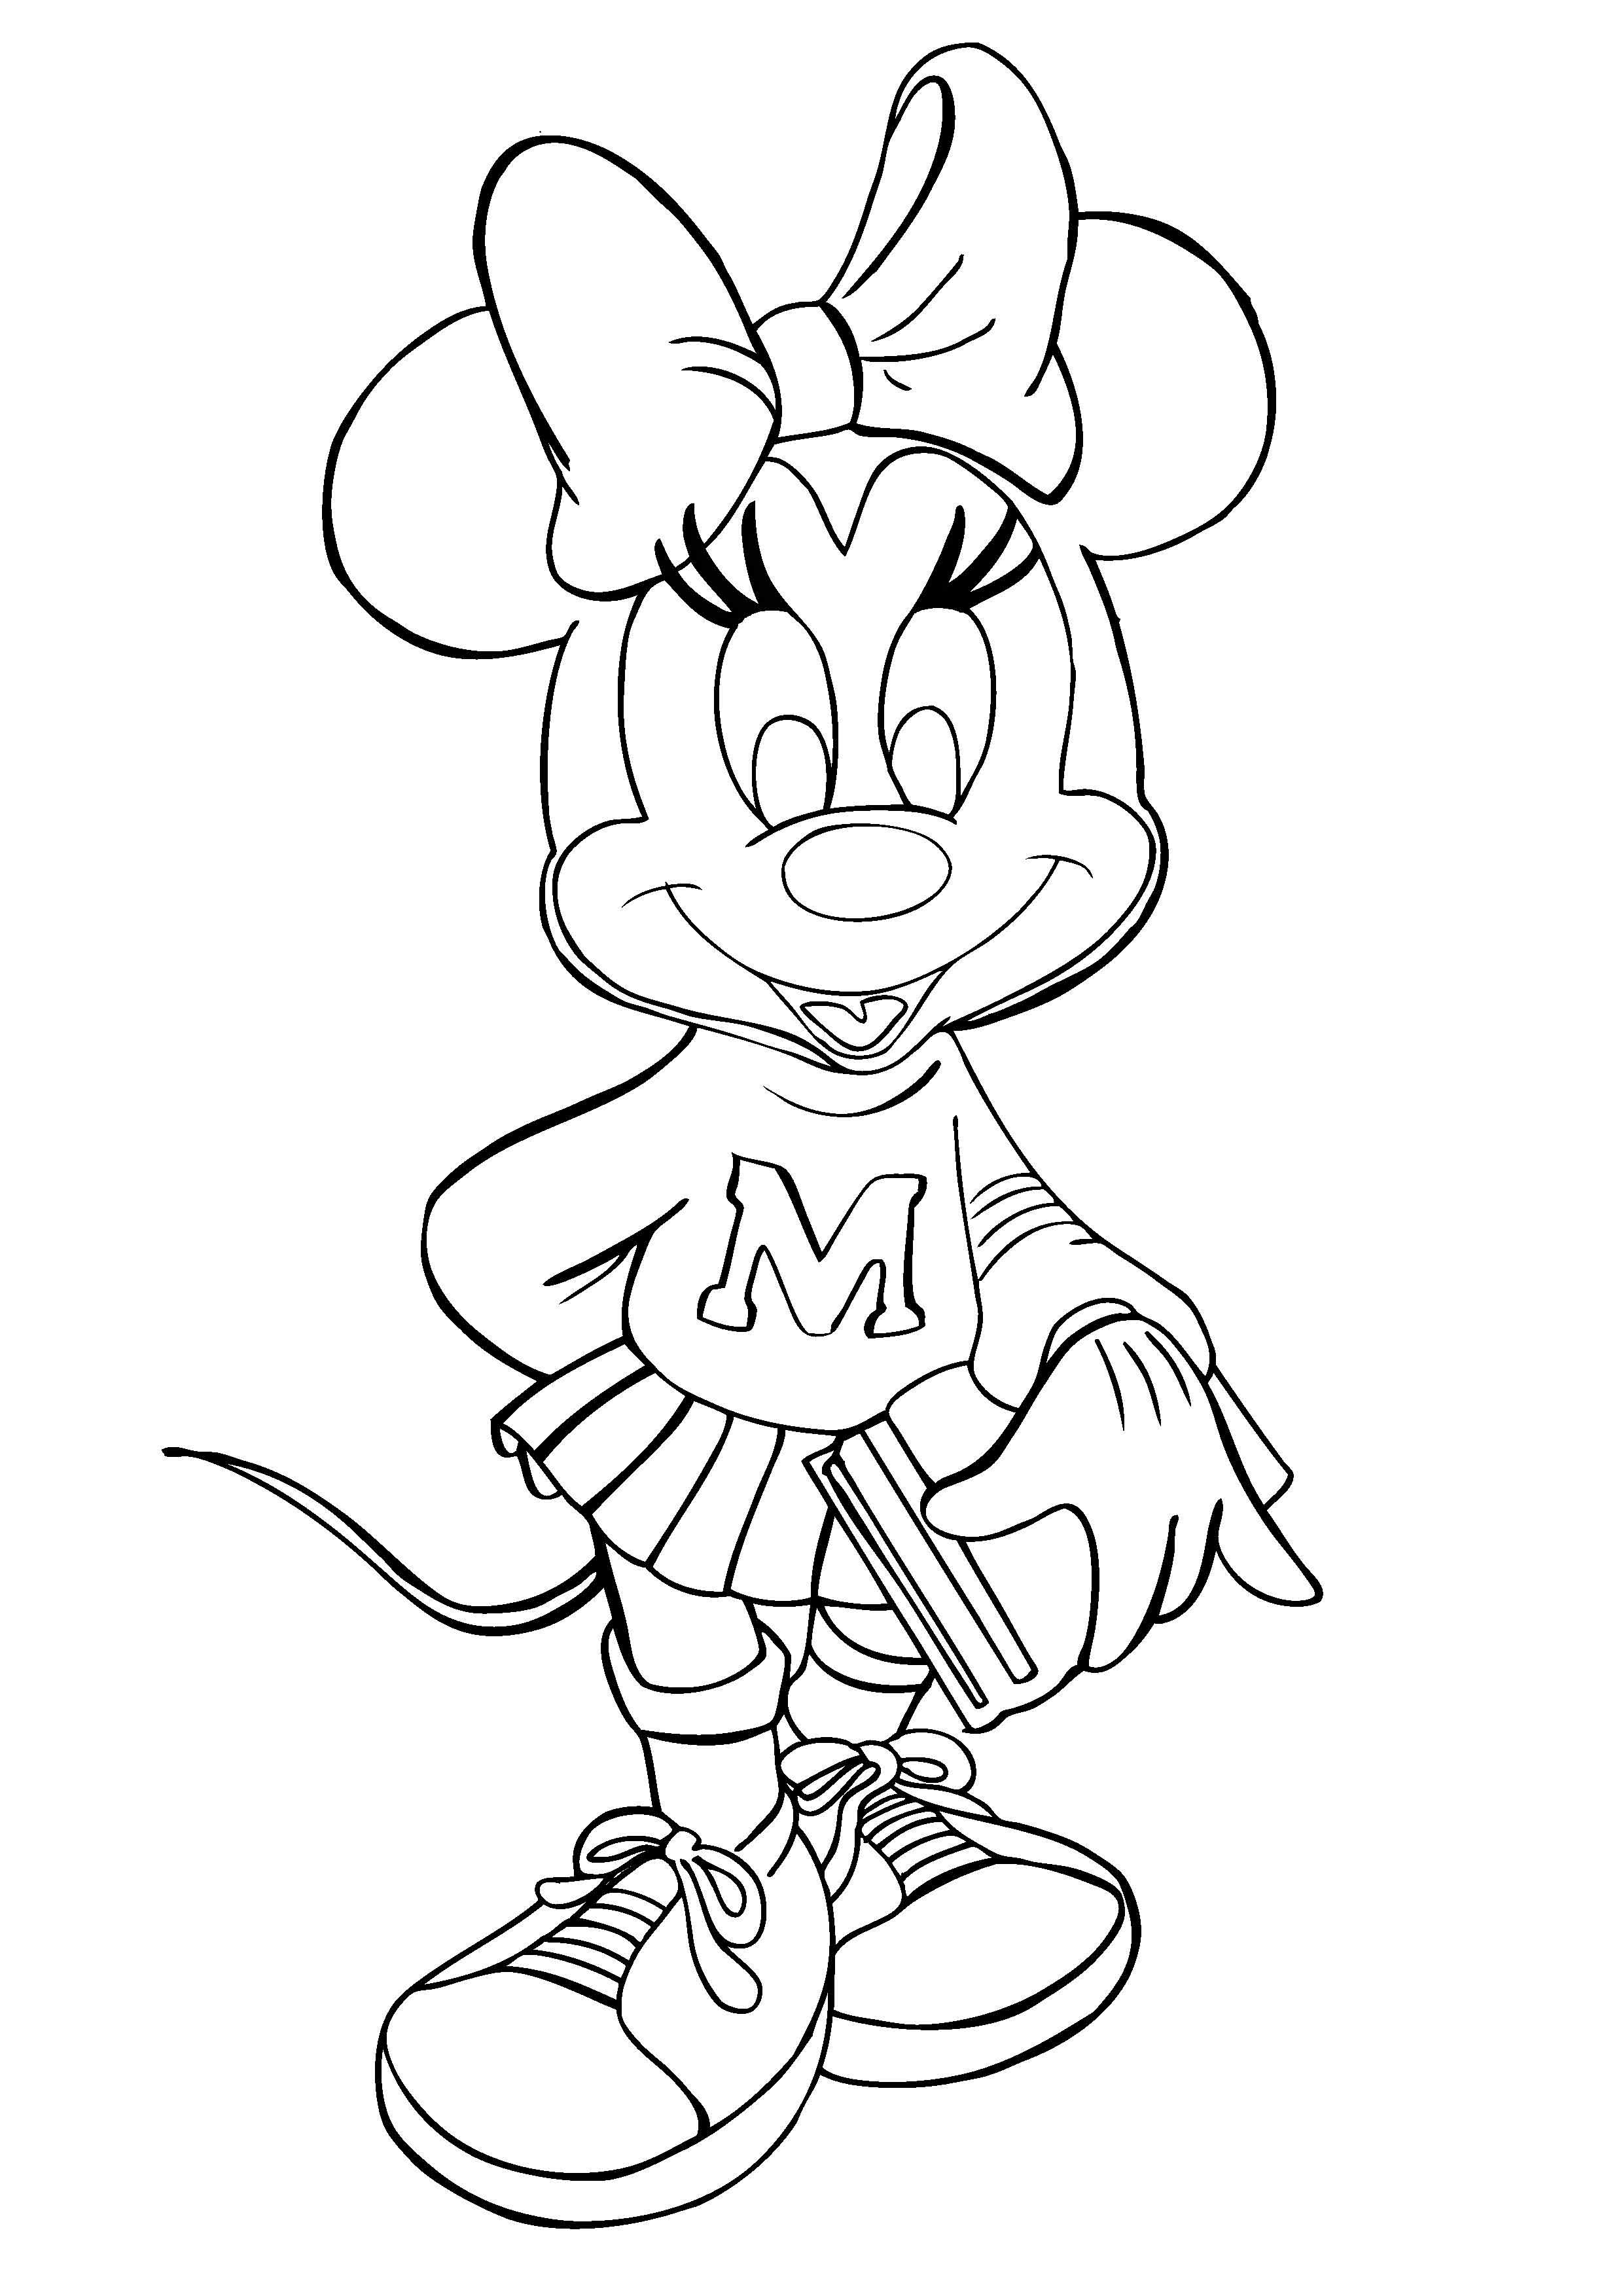 Free printable minnie mouse coloring pages for kids - Disney coloring kids ...